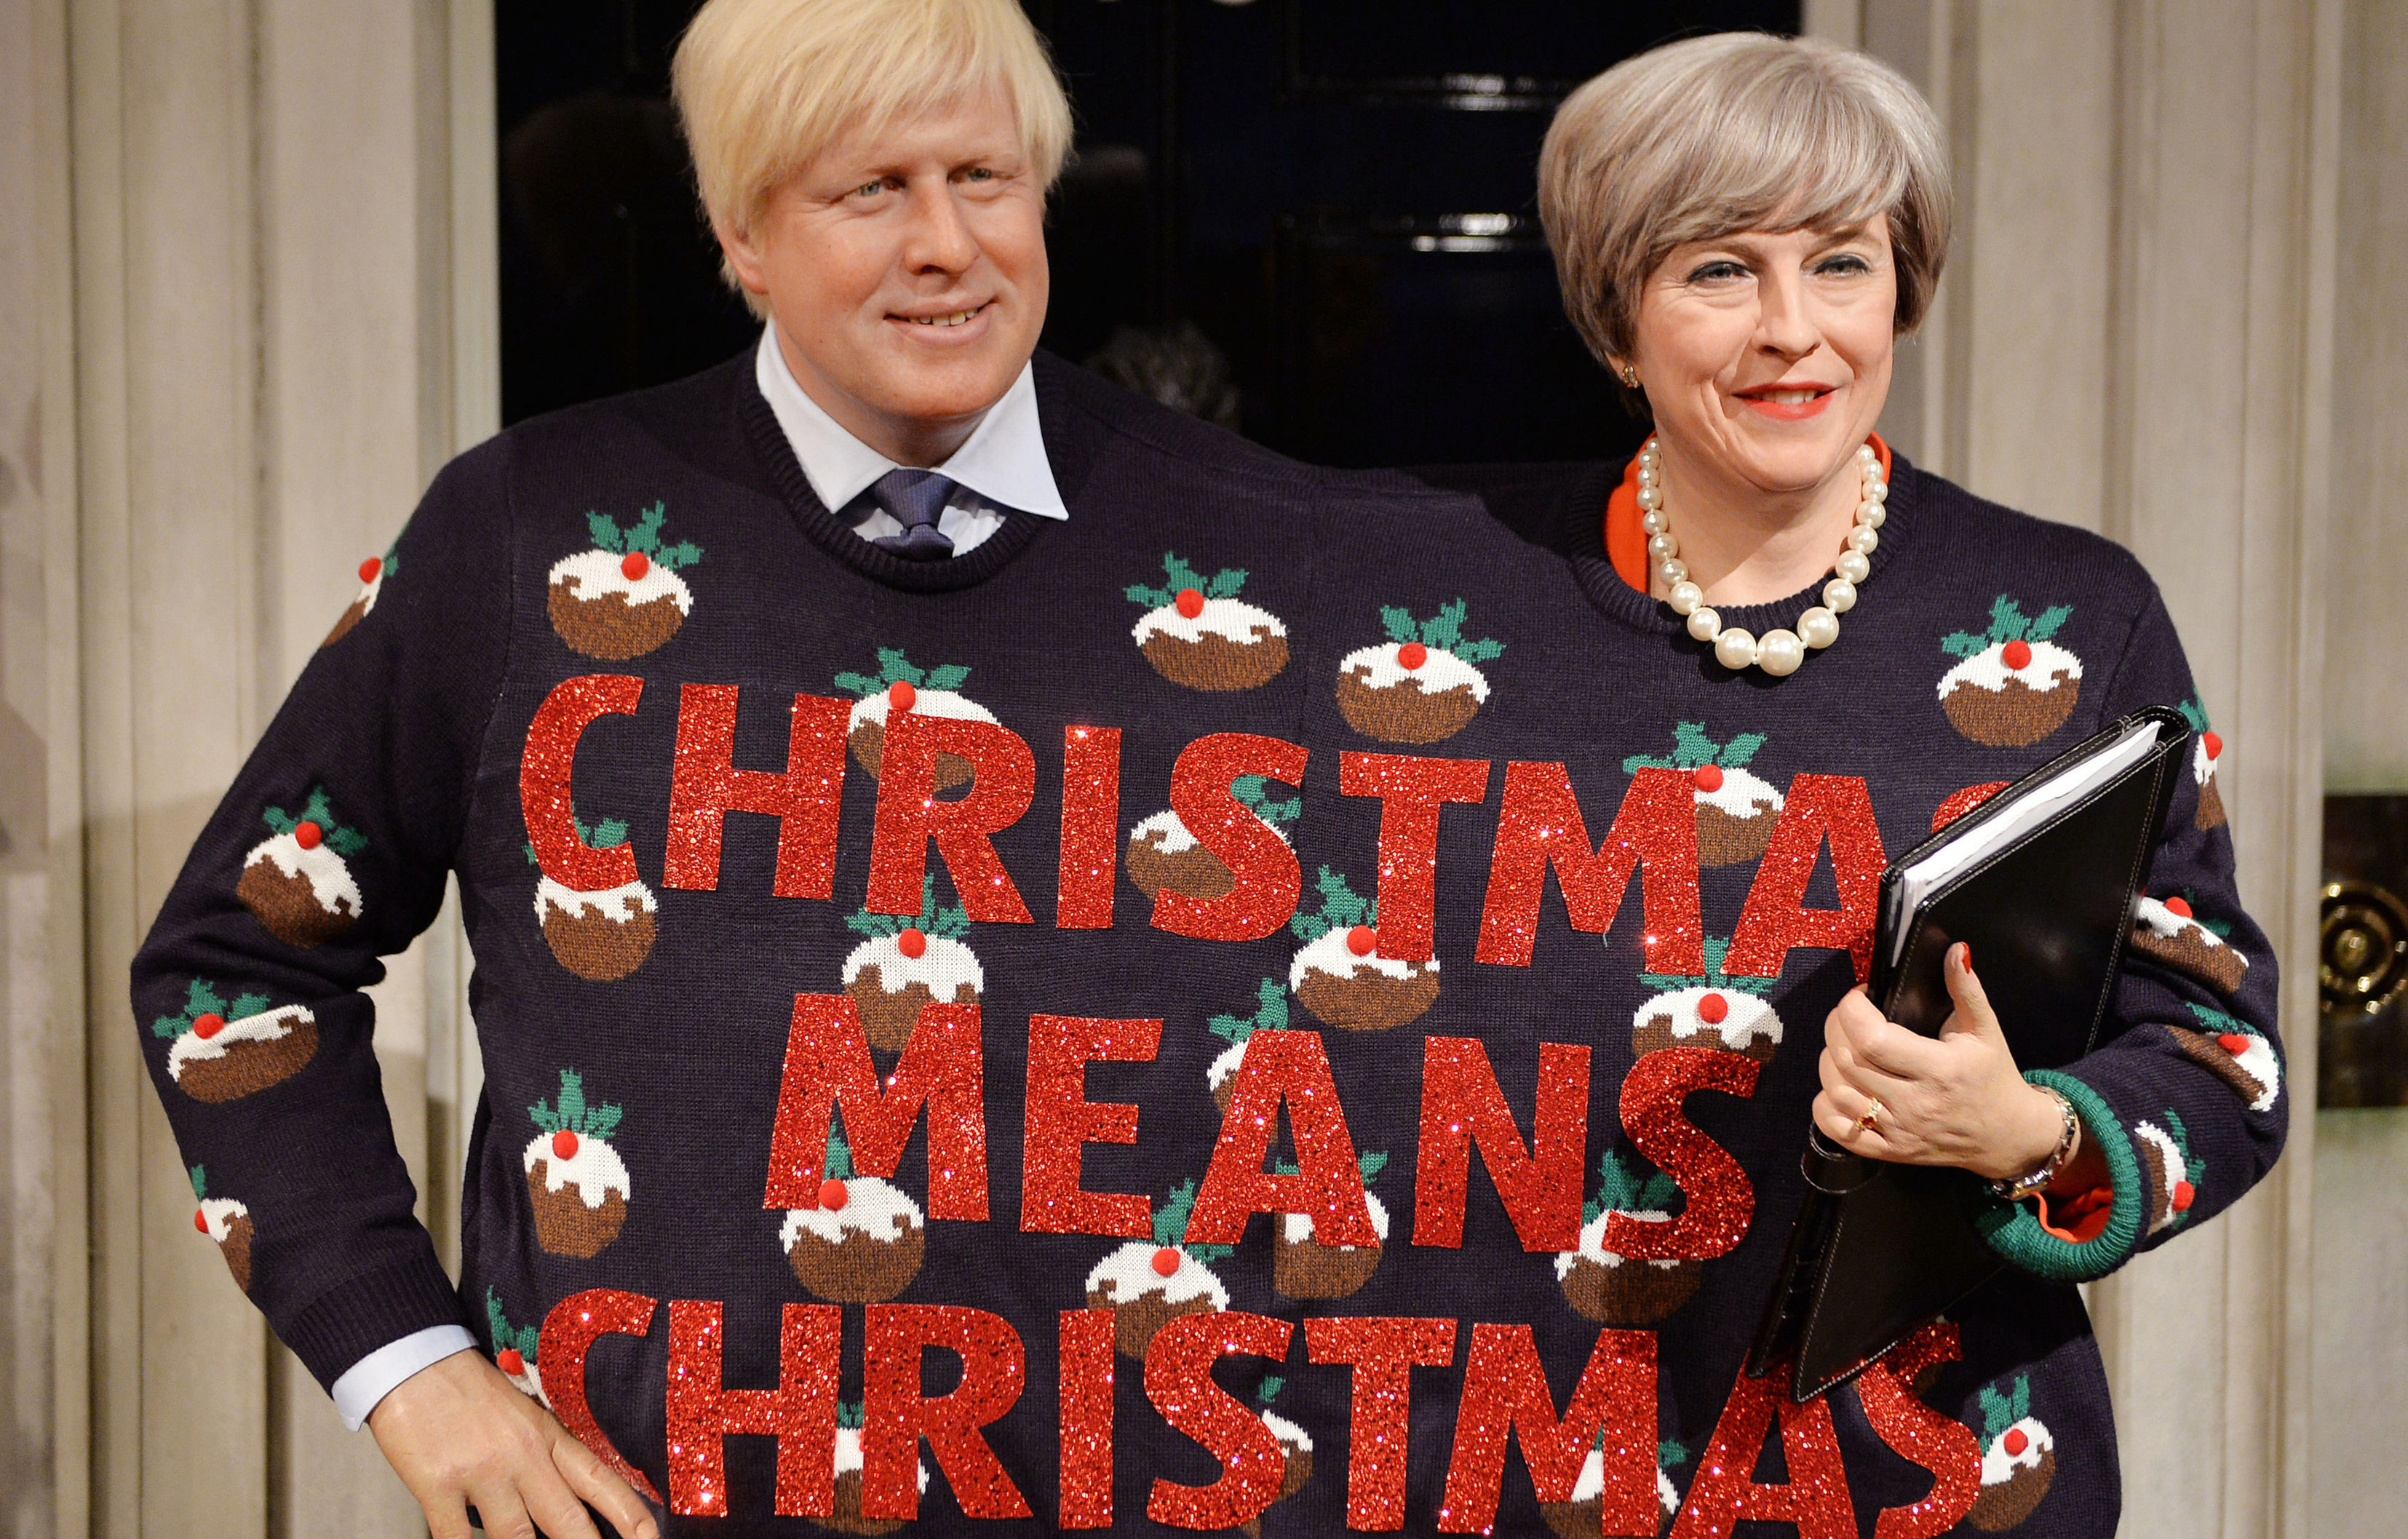 Waxwork Boris and Theresa share the Christmas spirit (John Stillwell/PA Wire)